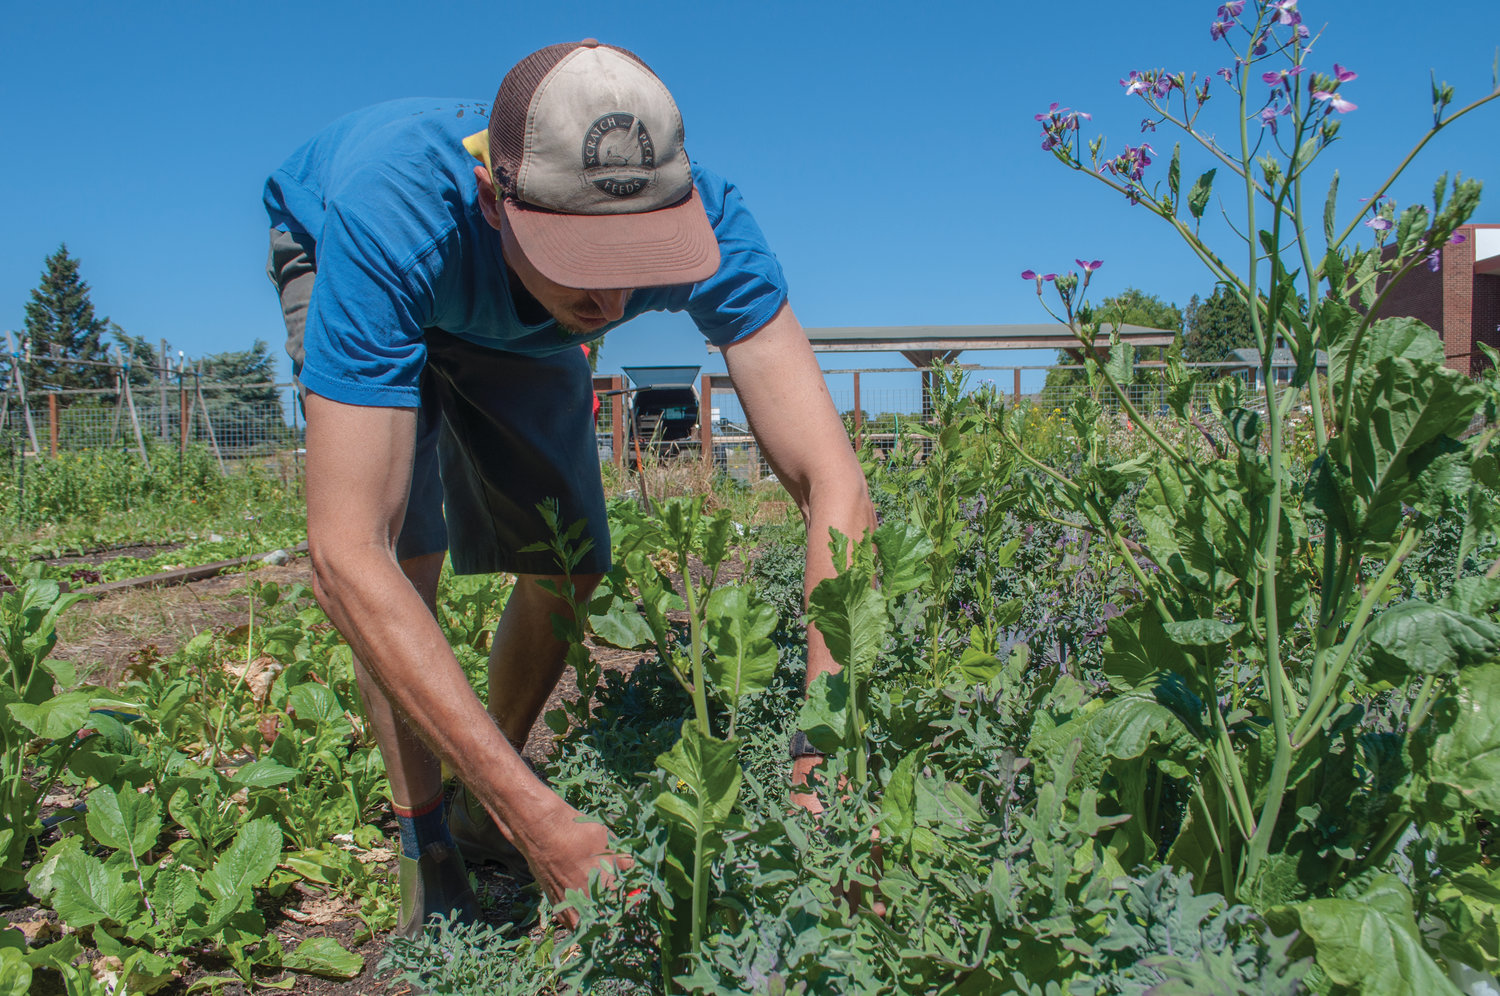 Zach Gayne works in the Port Townsend High School garden, which he oversees as garden coordinator.